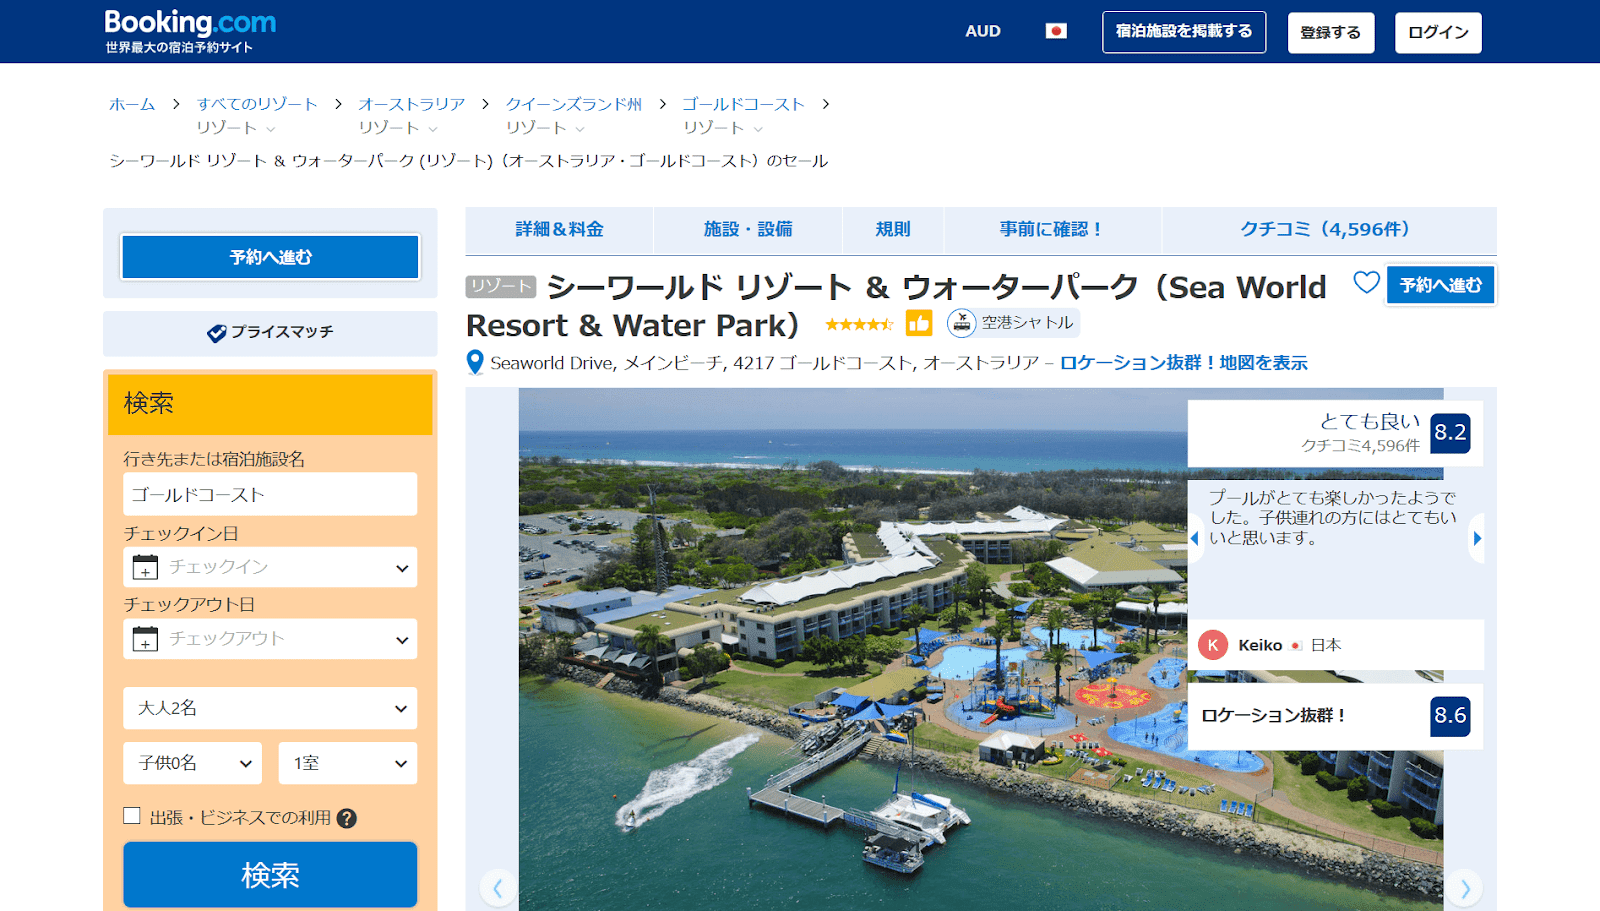 https://www.booking.com/hotel/au/sea-world-resort-water-park.ja.html?aid=1858777&no_rooms=1&group_adults=2&room1=A%2CA